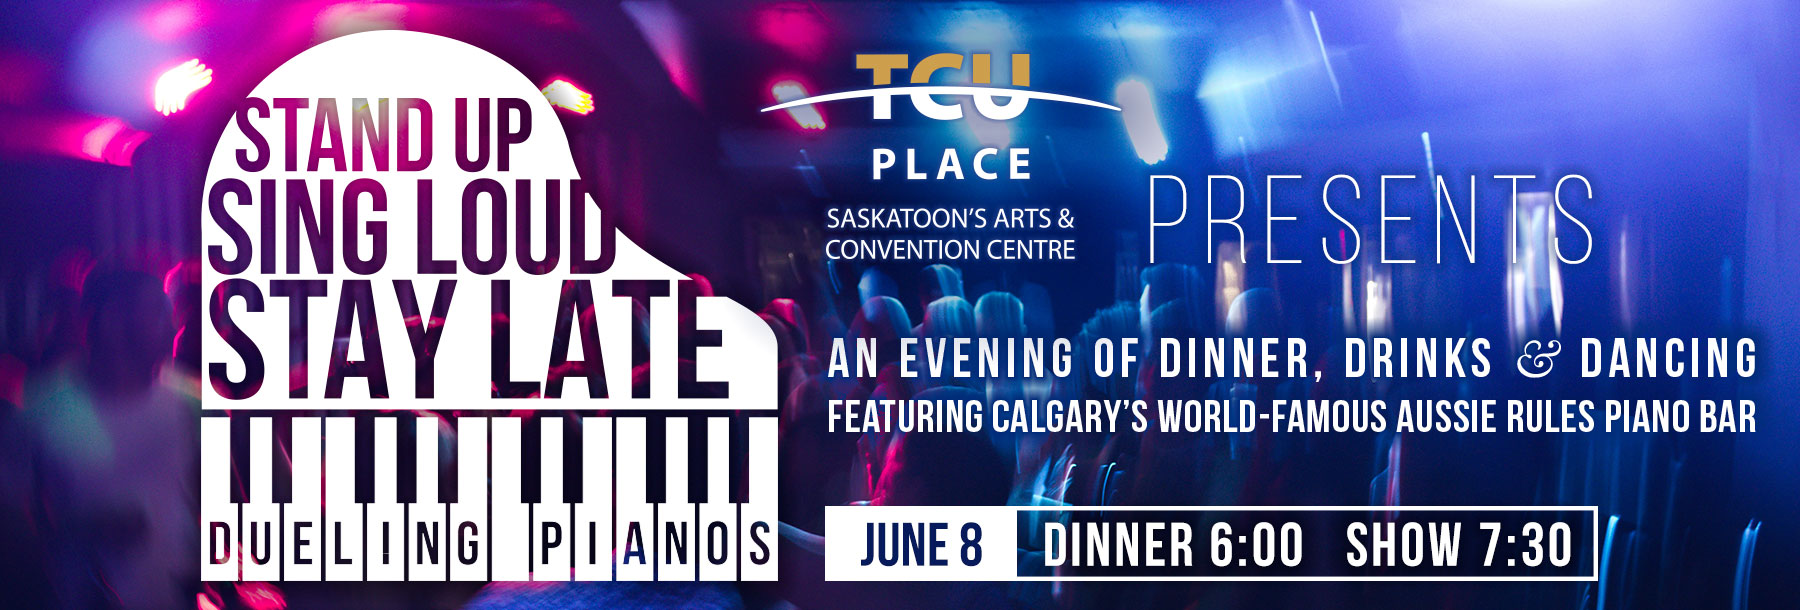 TCU Place presents Dueling Pianos, an evening of dinner, drinks and dancing featuring Calgary's Aussie Rules Piano Bar